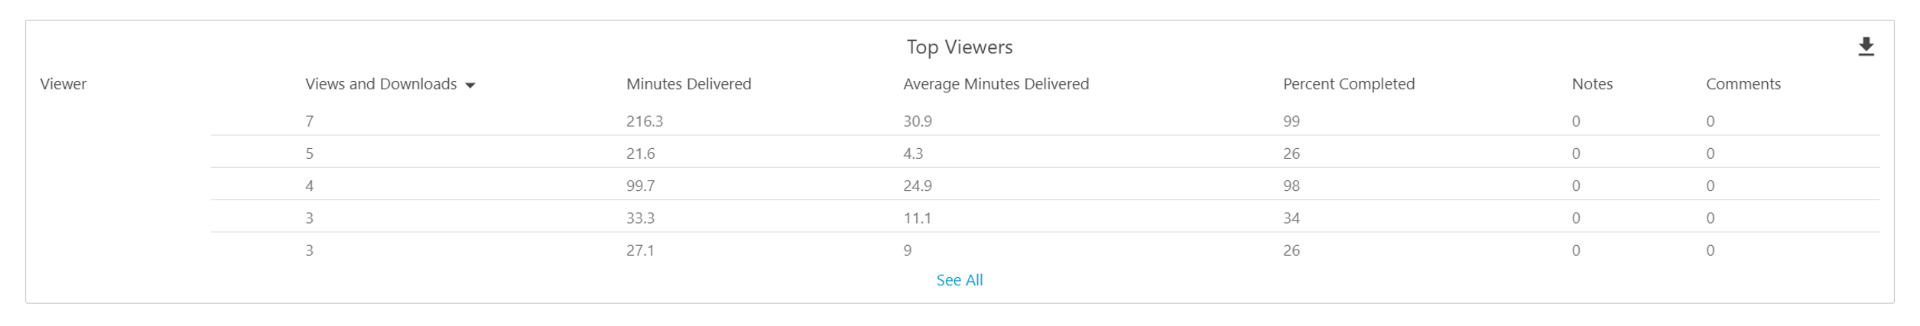 A list of top viewers organised by views and downloads, minutes delivered and their completion percentages. A red box indicates the viewer column contains student names but they have been omitted.